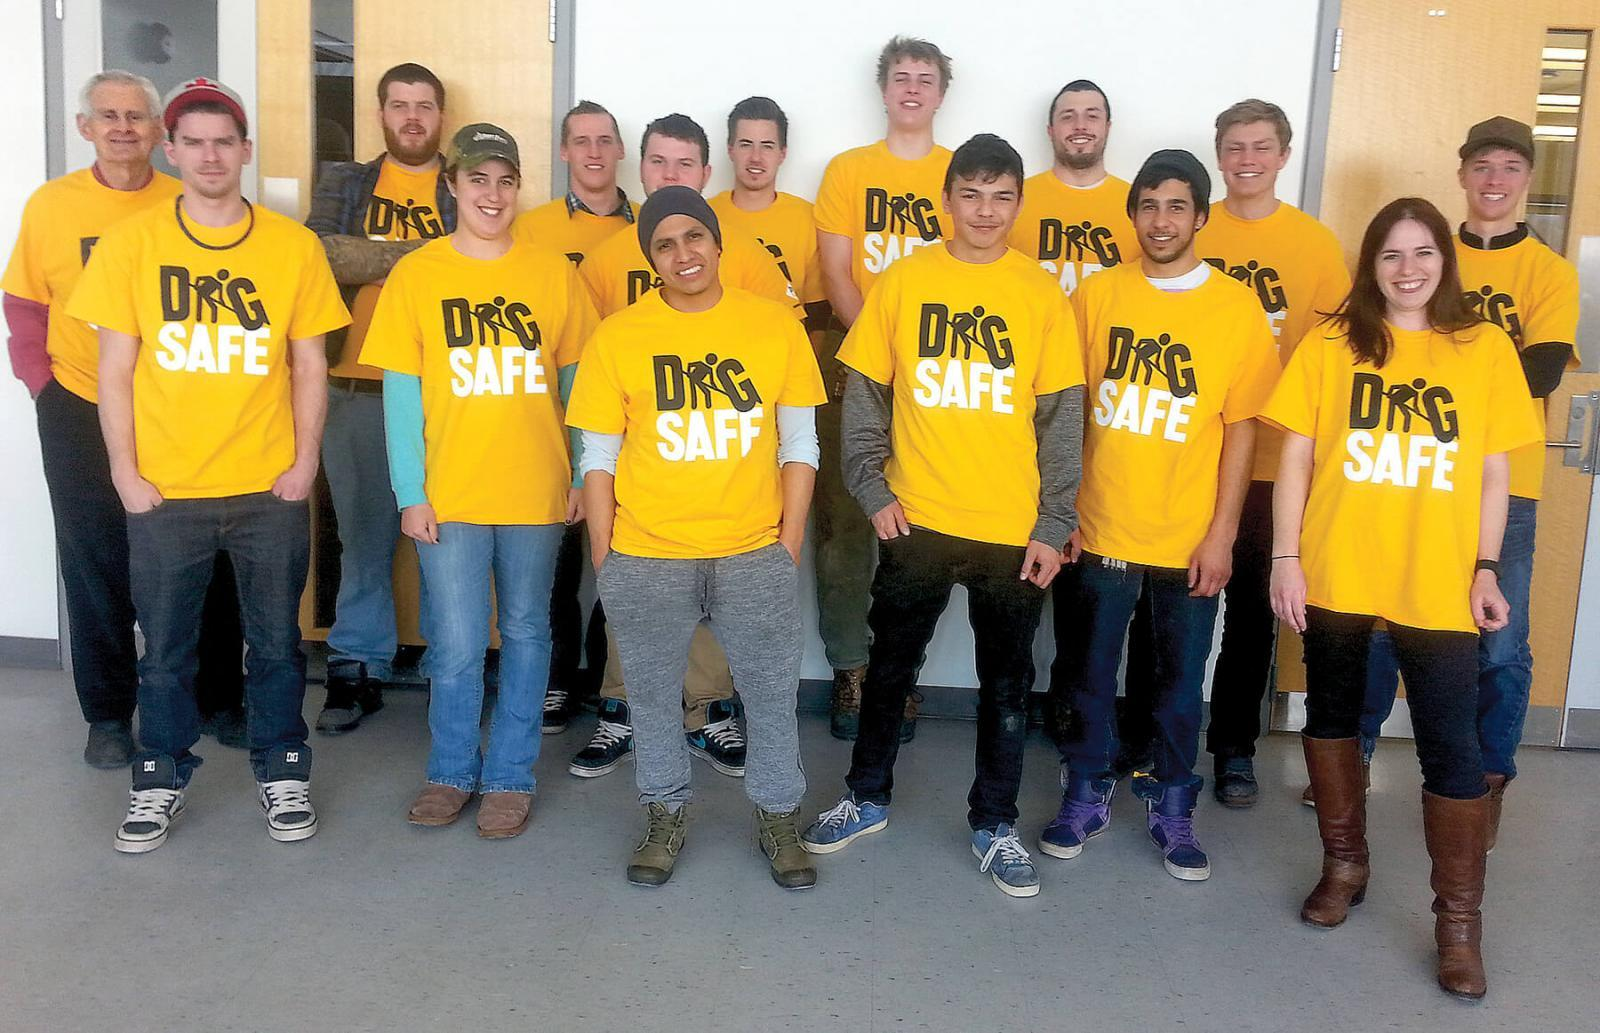 Students from Mohawk College celebrate Dig Safe Day.